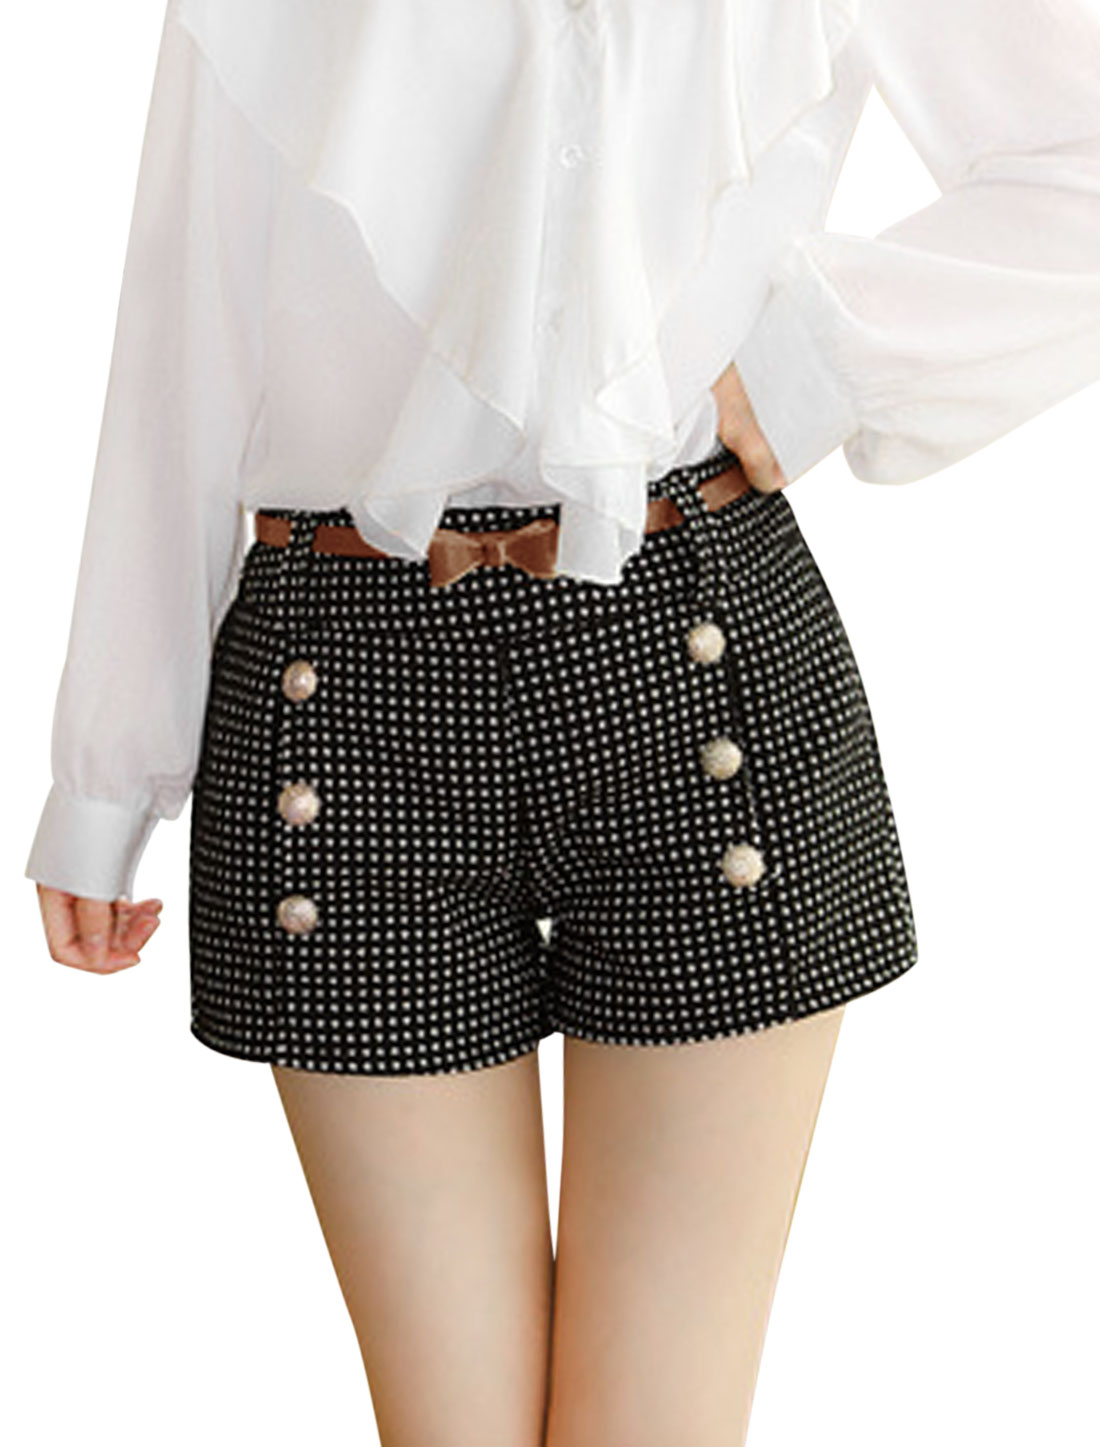 Women Buttons Decor Two Front Pockets Plaids Worsted Shorts w Belt Black S